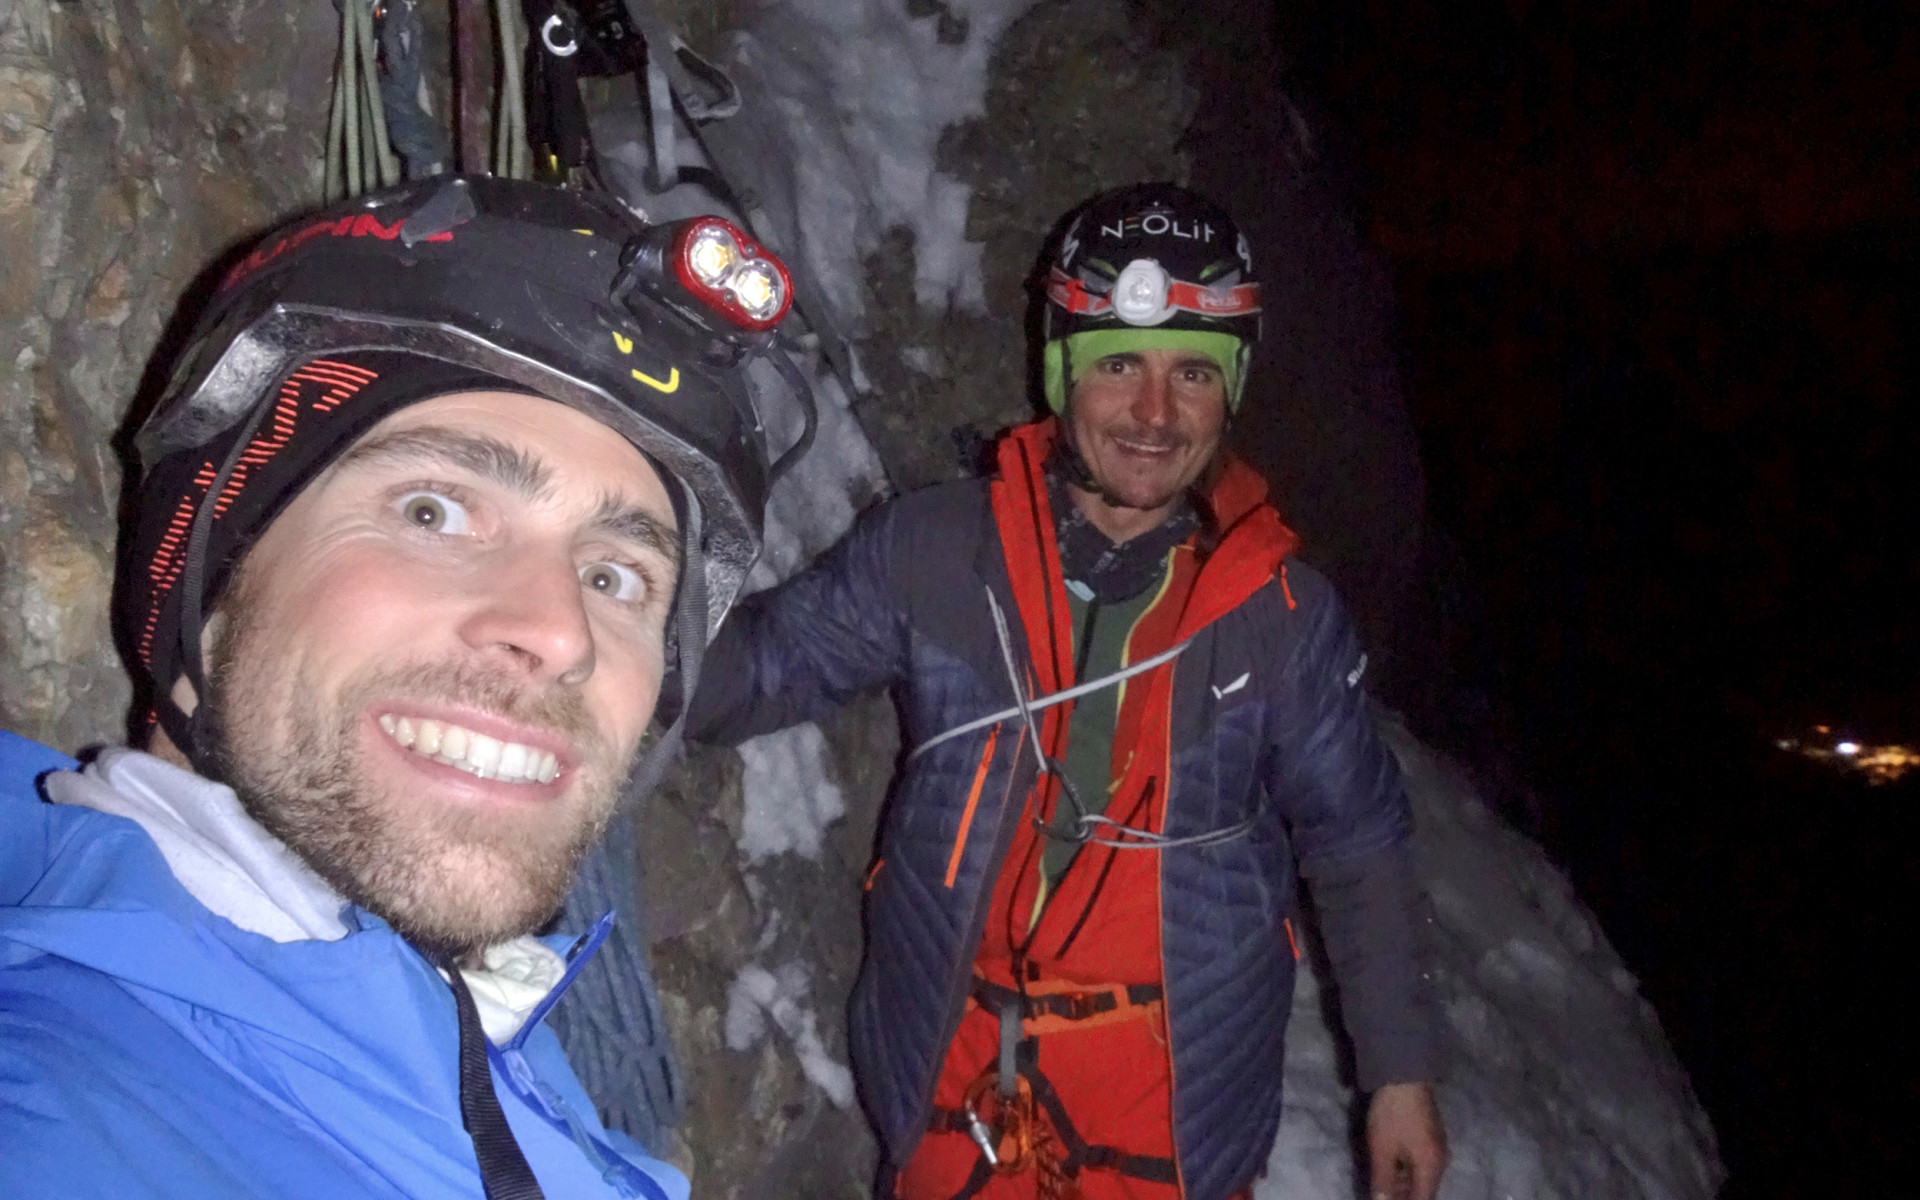 After a few days of preparation, the two pro climbers started the approach on the wall again on 16th December.